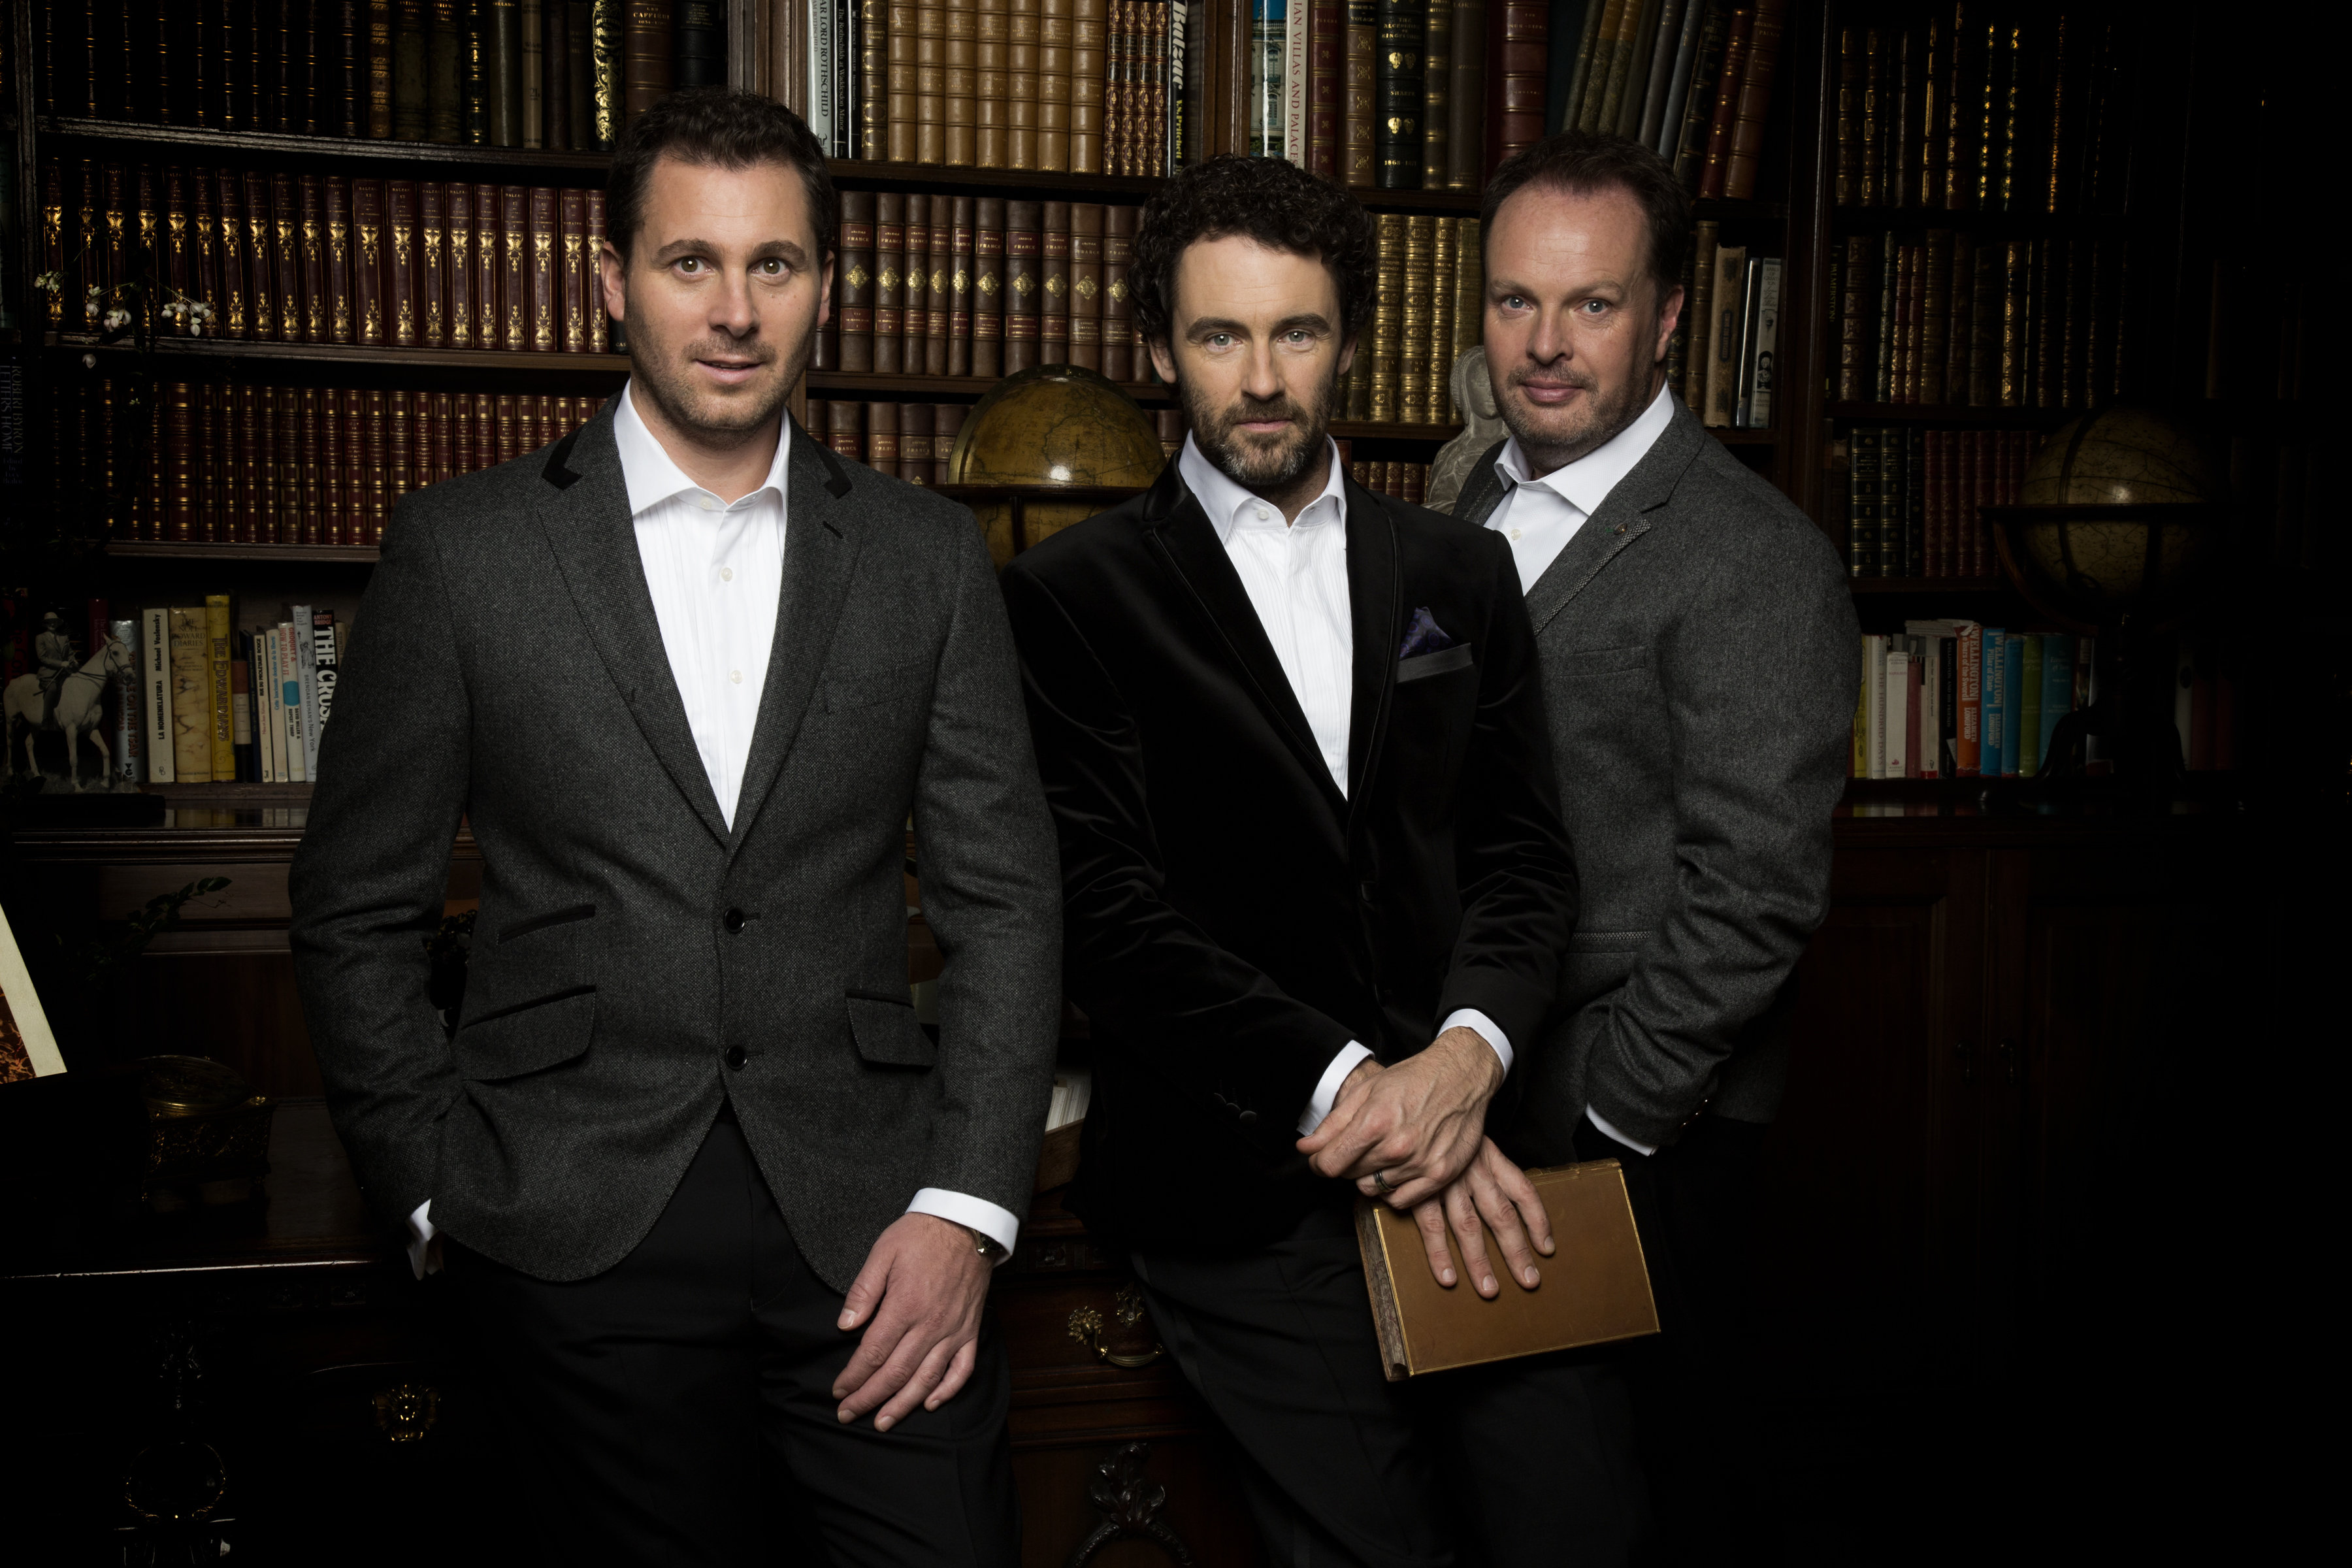 The Celtic Tenors Present: The Irish Songbook at the Marcus Center on Friday, March 1